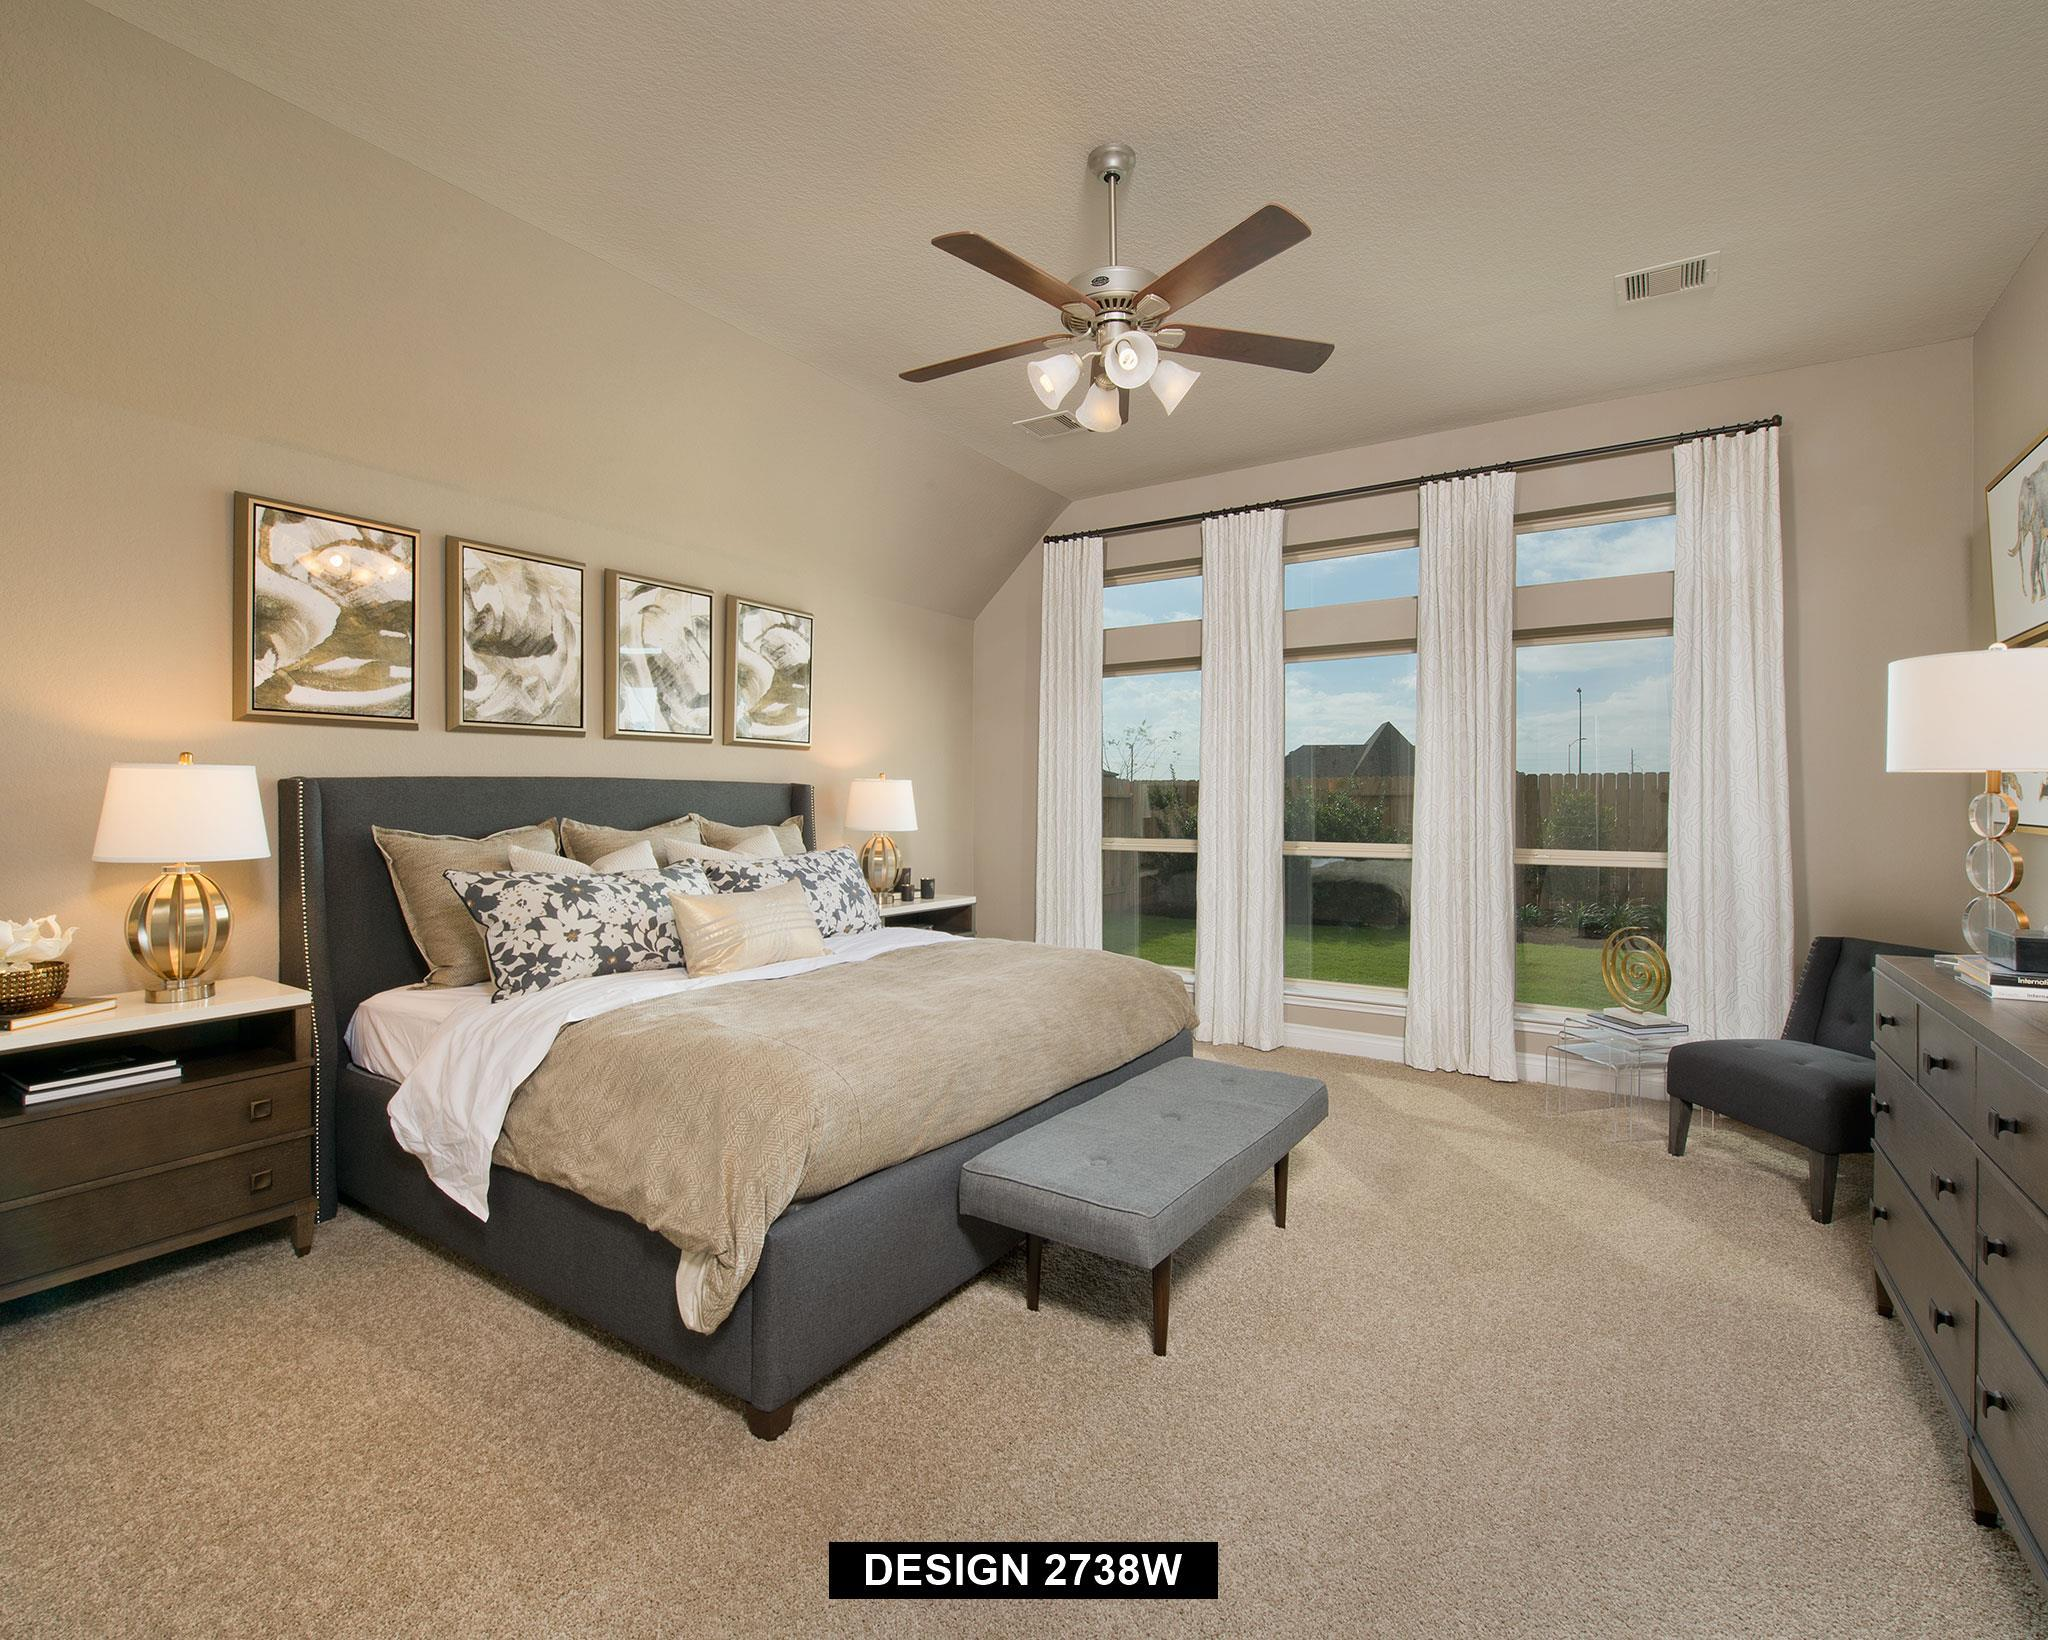 Bedroom featured in the 2738W By Perry Homes in Houston, TX